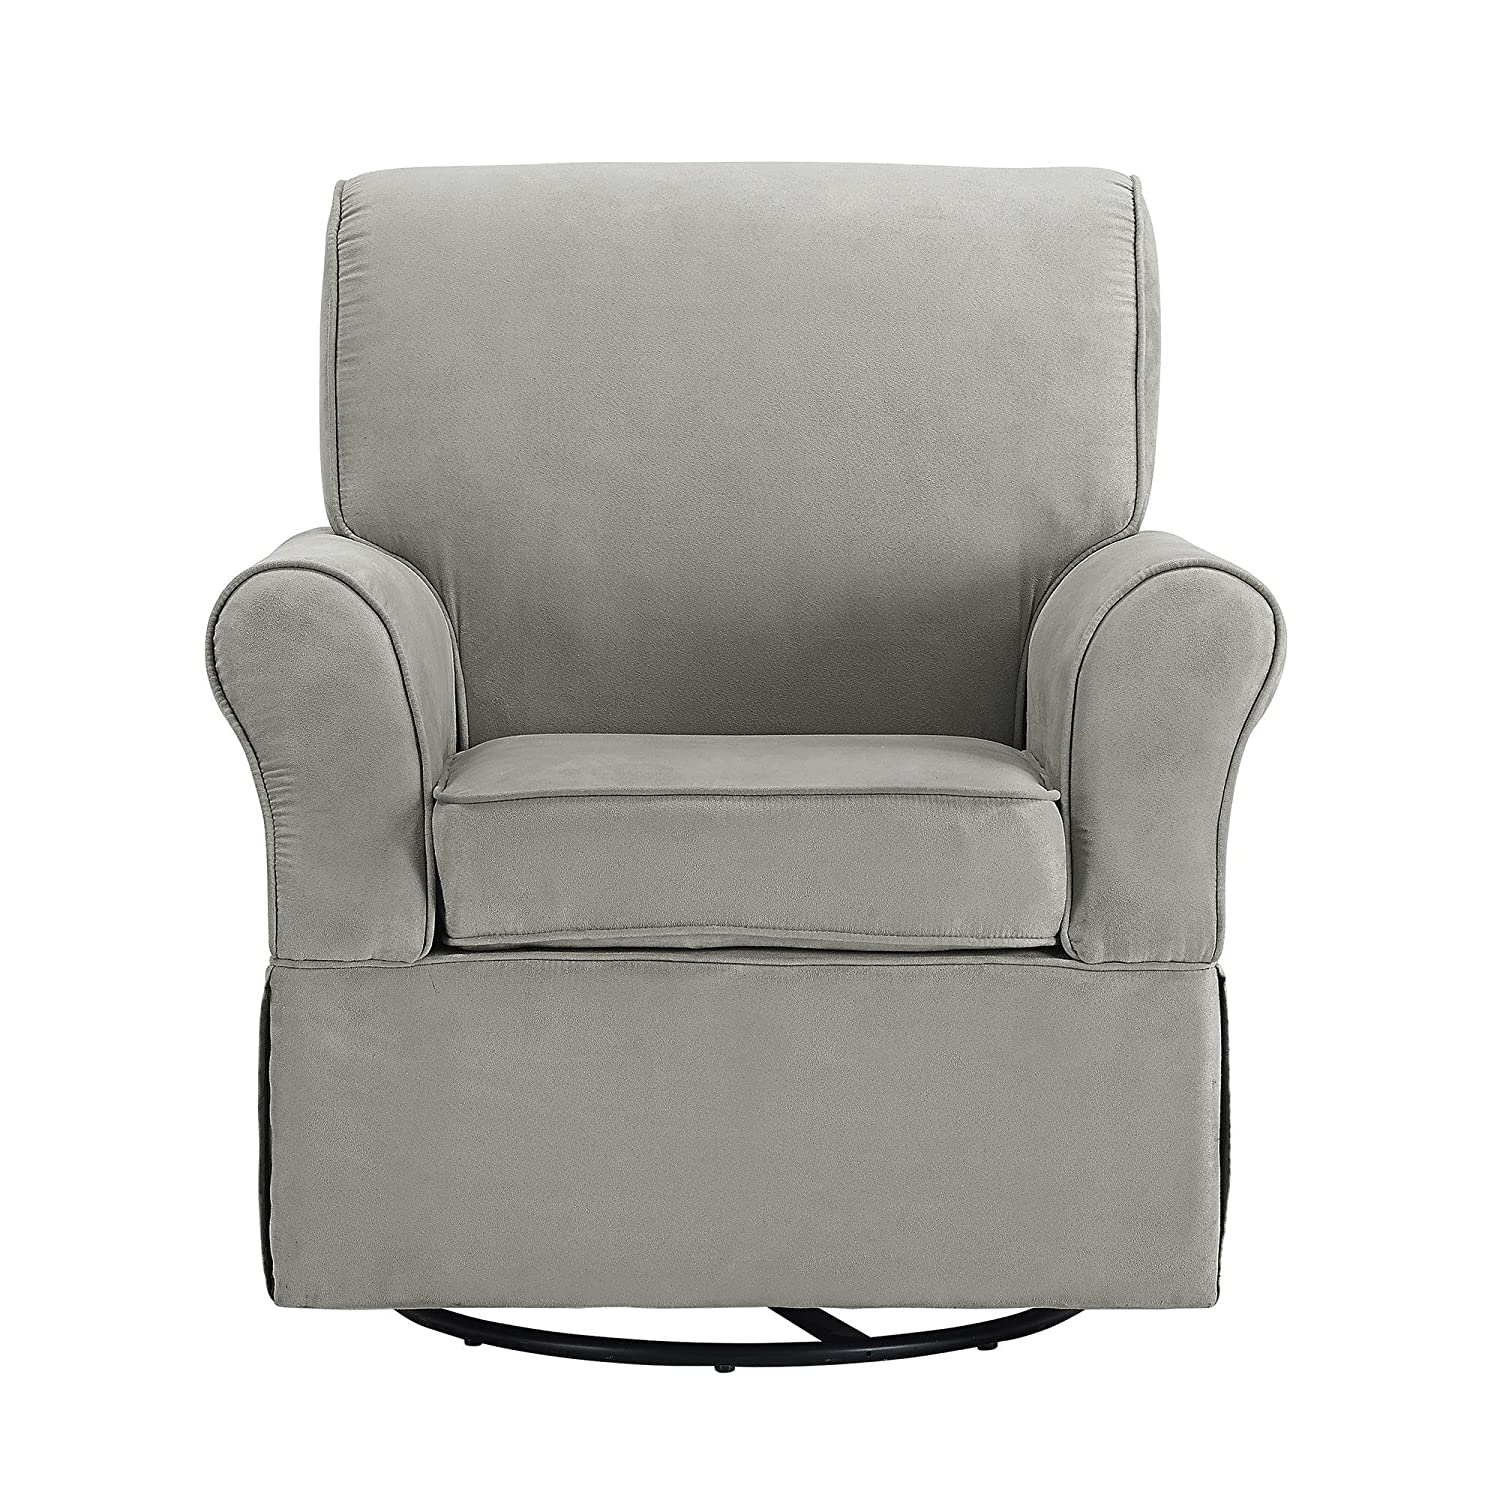 Amazoncom Baby Relax The Kelcie Nursery Swivel Glider Chair and